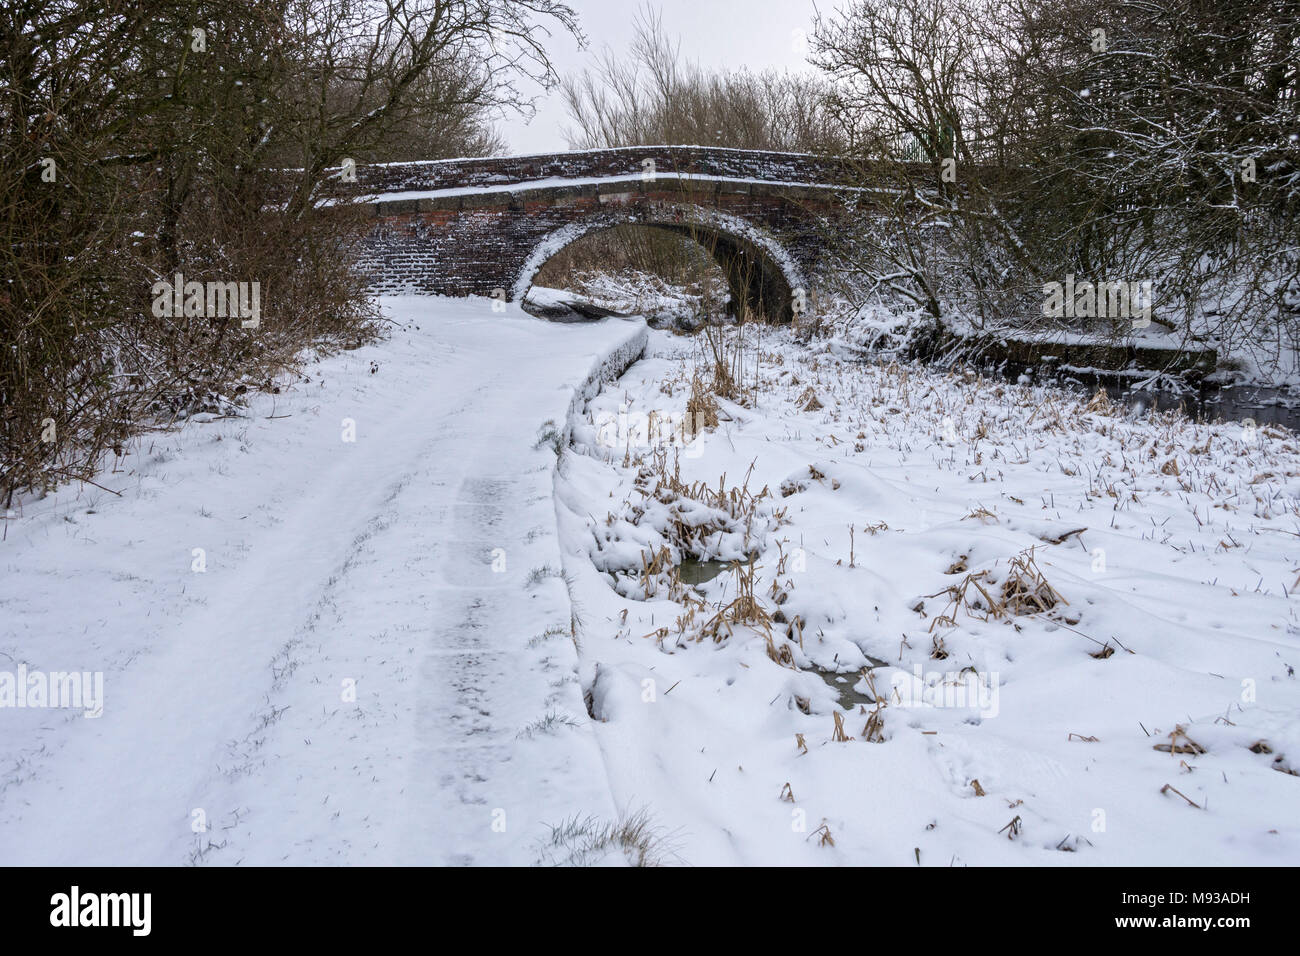 Cinderland bridge over the former canal, Hollinwood Branch Canal Nature Reserve, Tameside, Manchester, England, UK - Stock Image